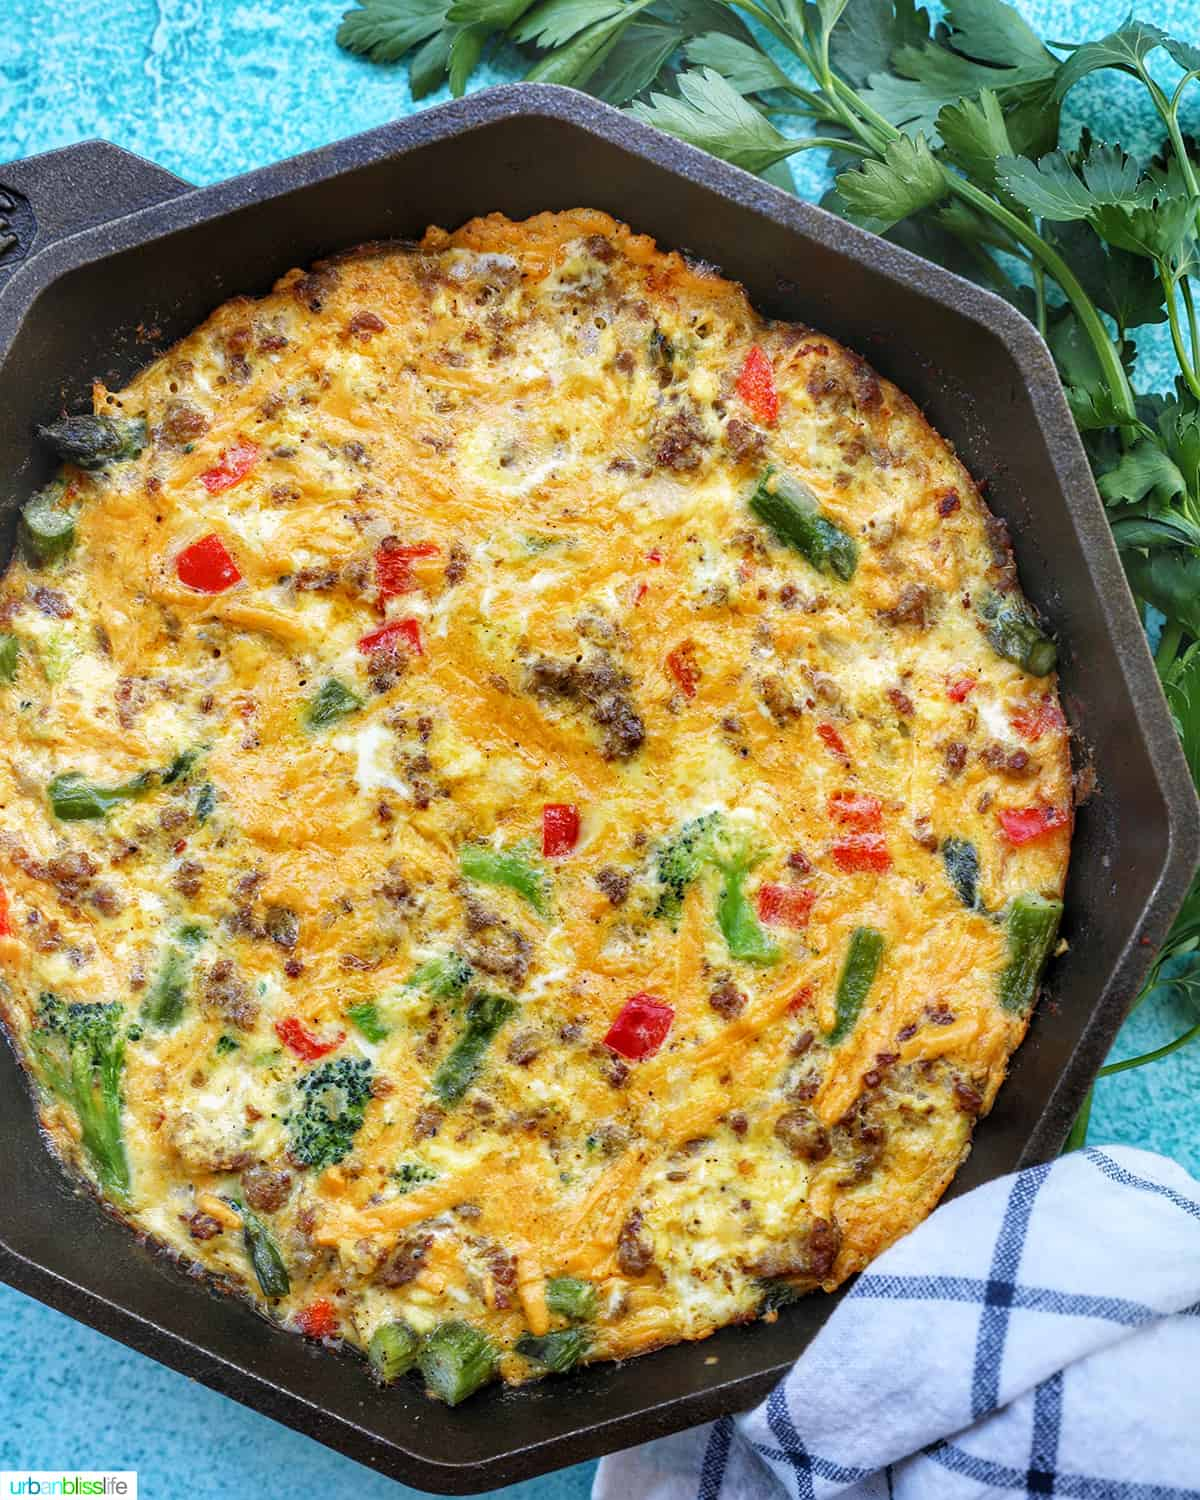 Sausage Frittata in skillet